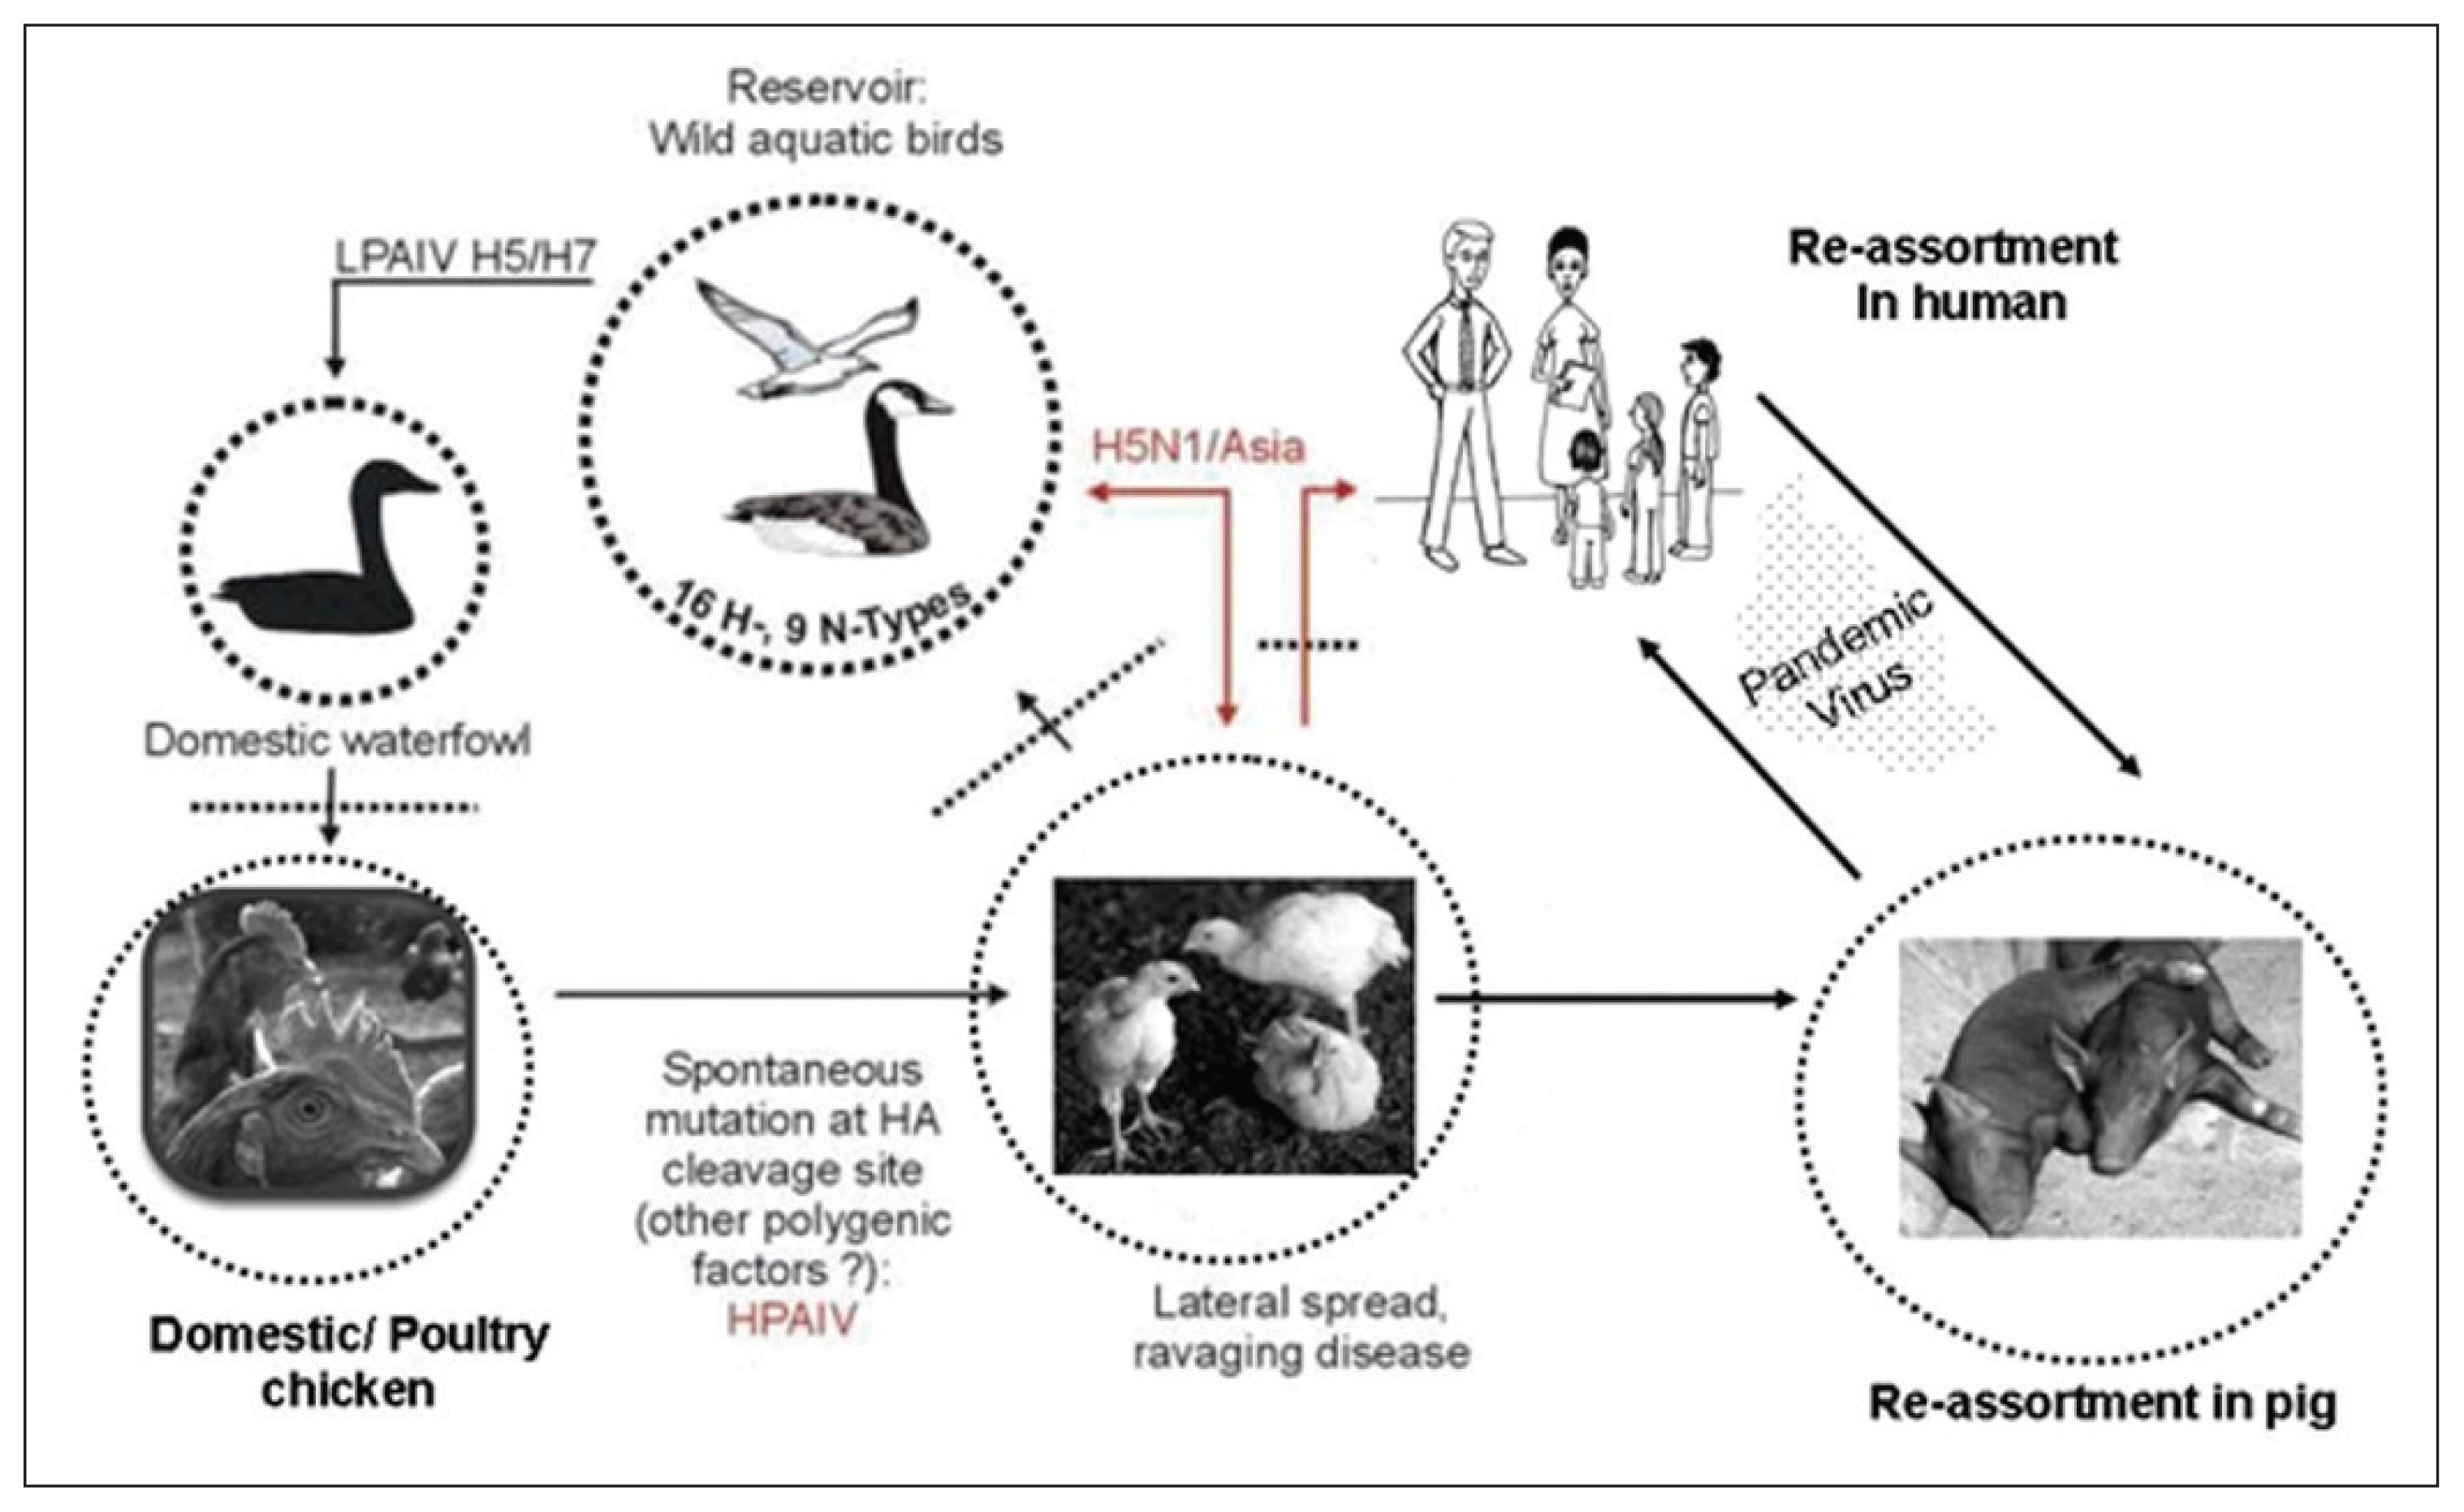 Avian influenza: Are our feathers ruffled?   Annals of Saudi Medicine